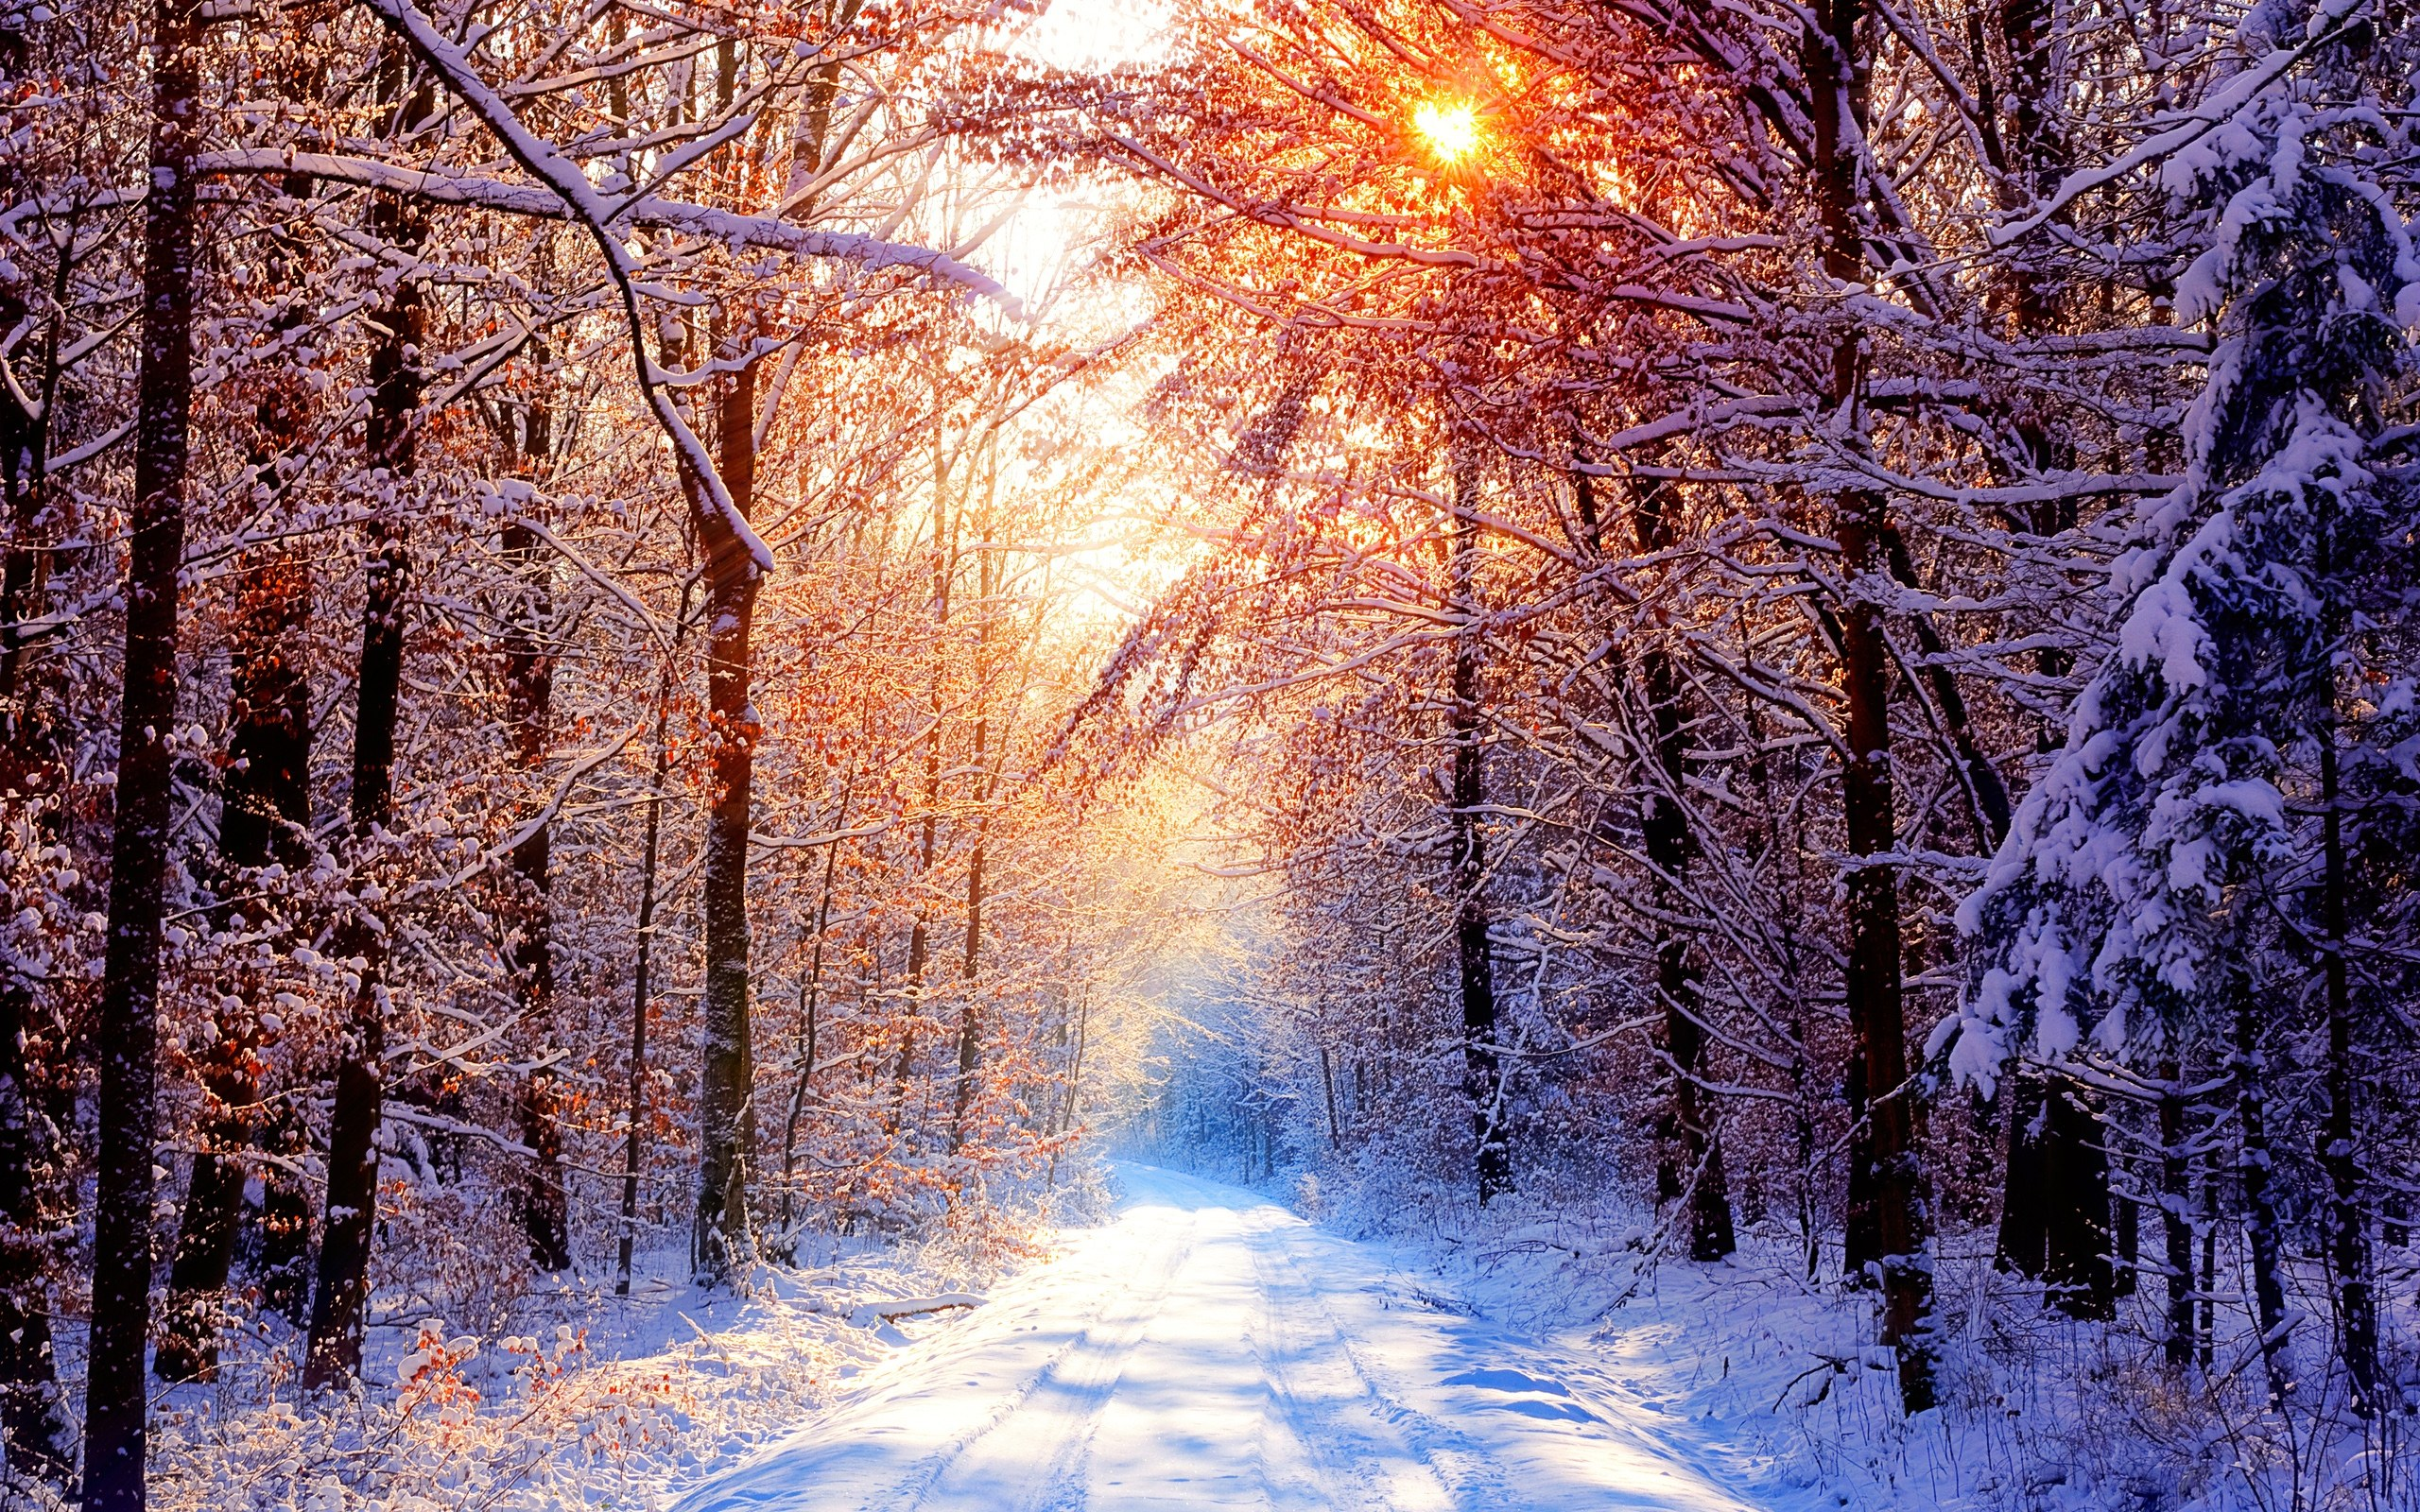 Set in a snowy forest wallpapers and images   wallpapers pictures 2560x1600